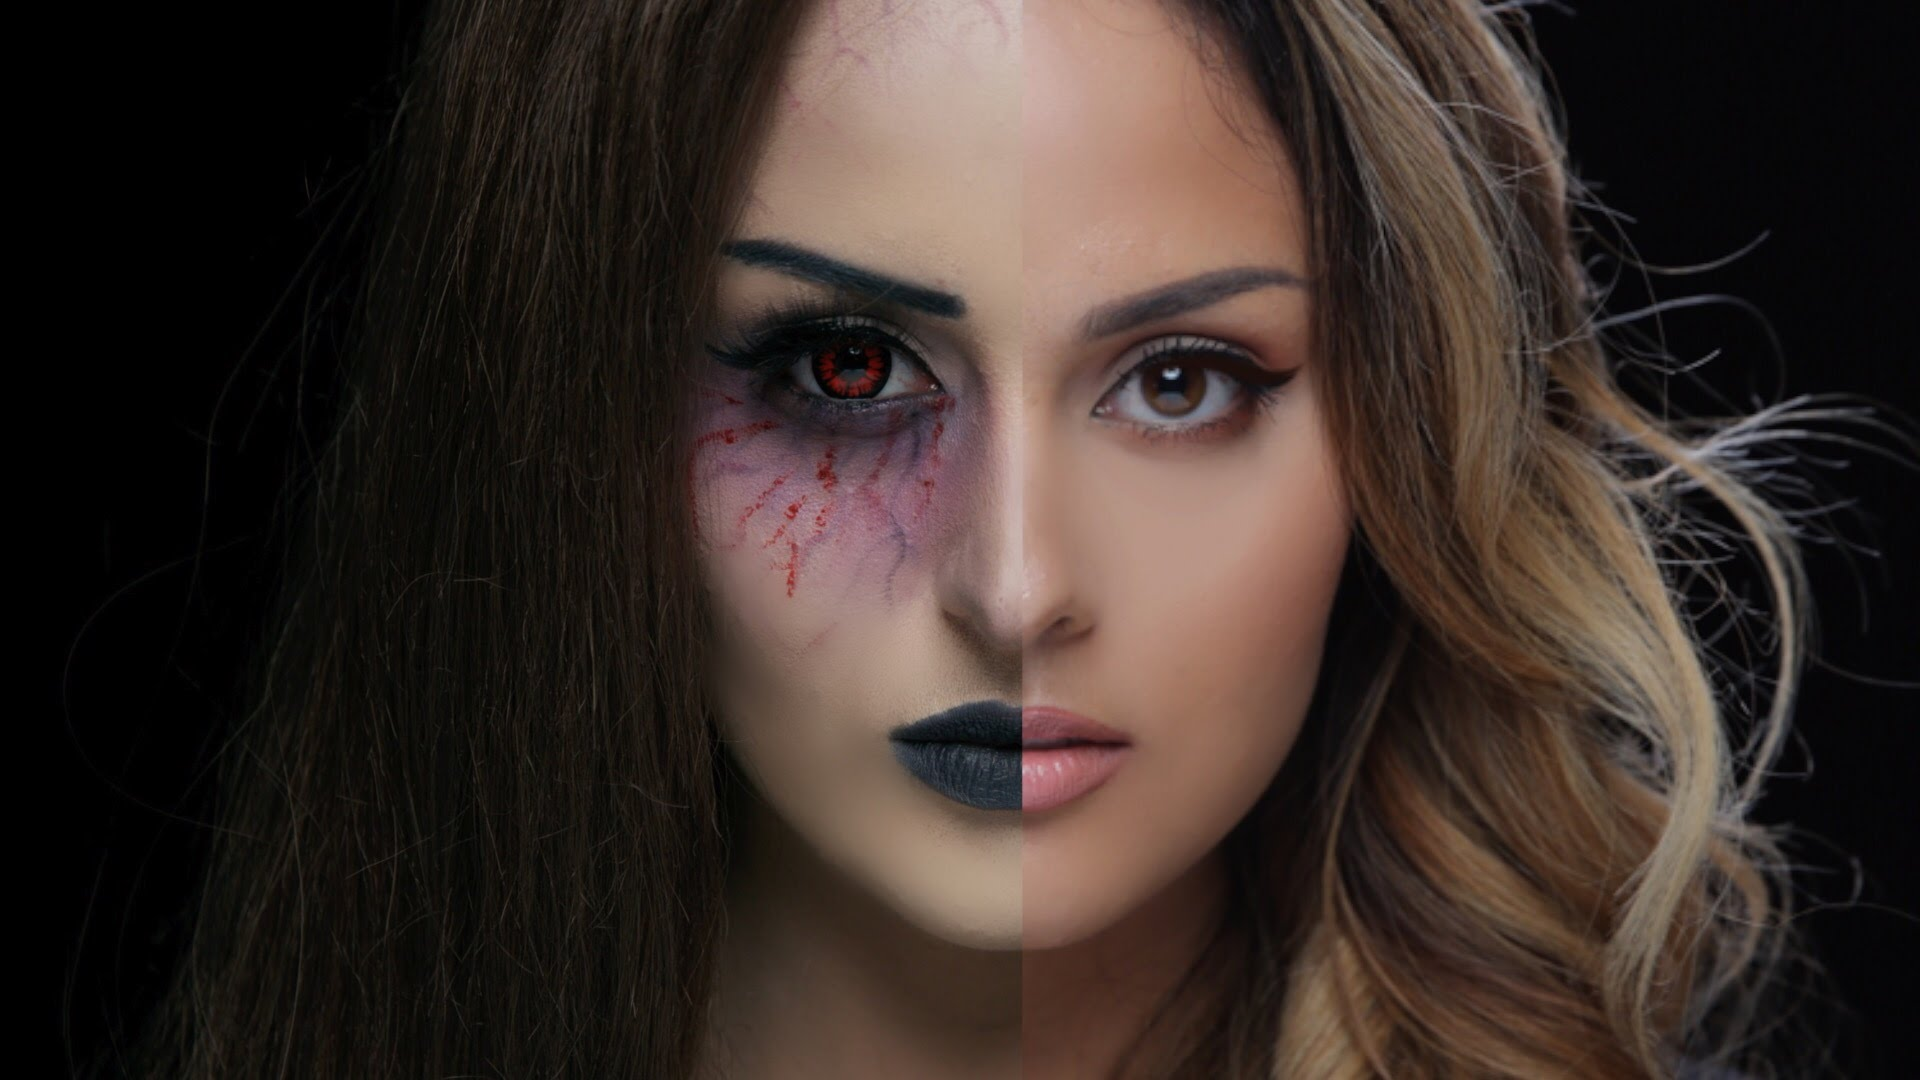 Half Face Halloween Makeup Ideas Everyone Love to Try